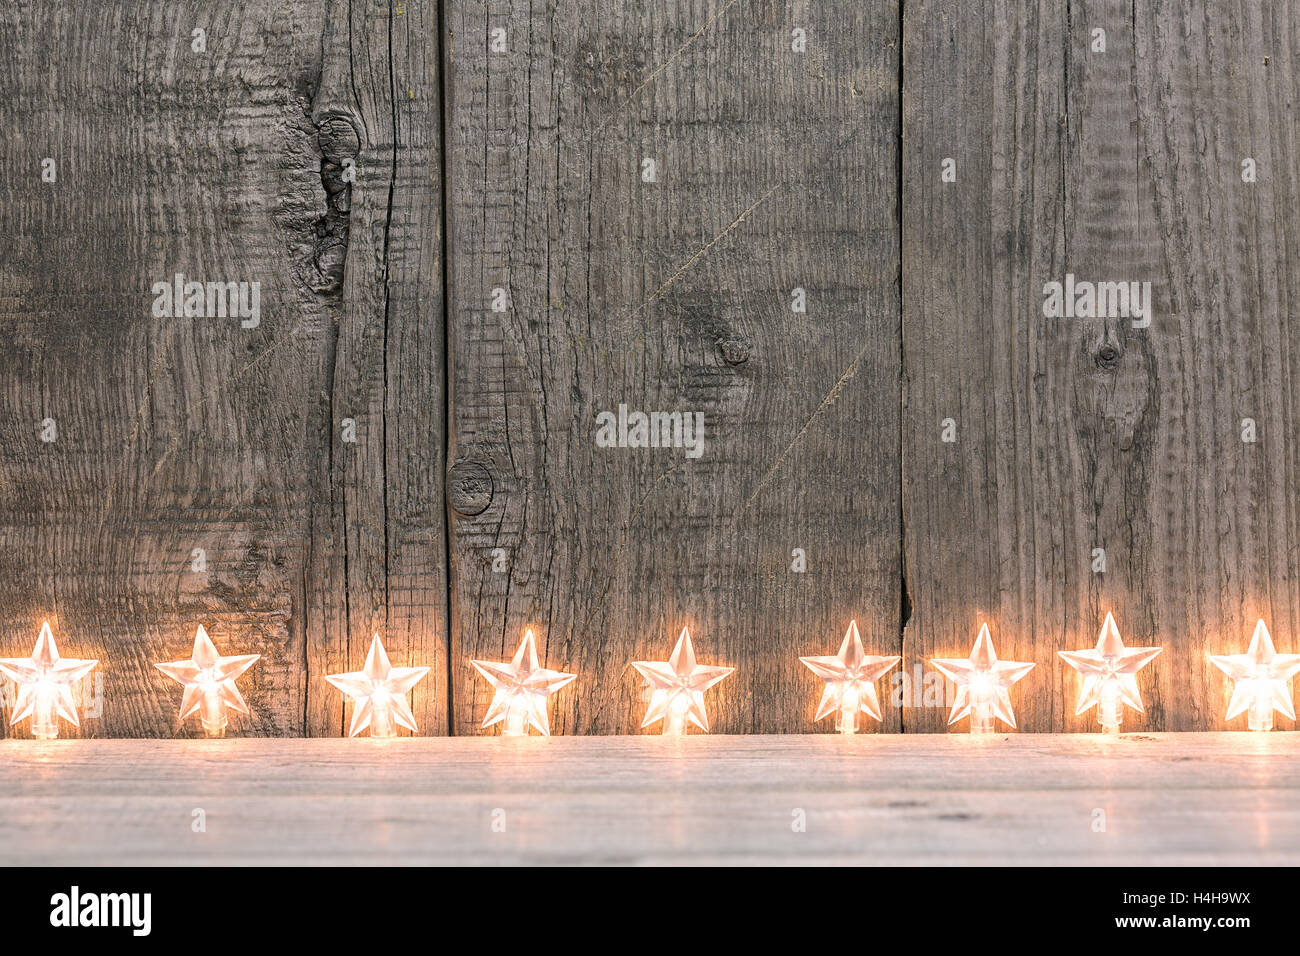 Christmas Lights On A Rustic Wooden Plank Background